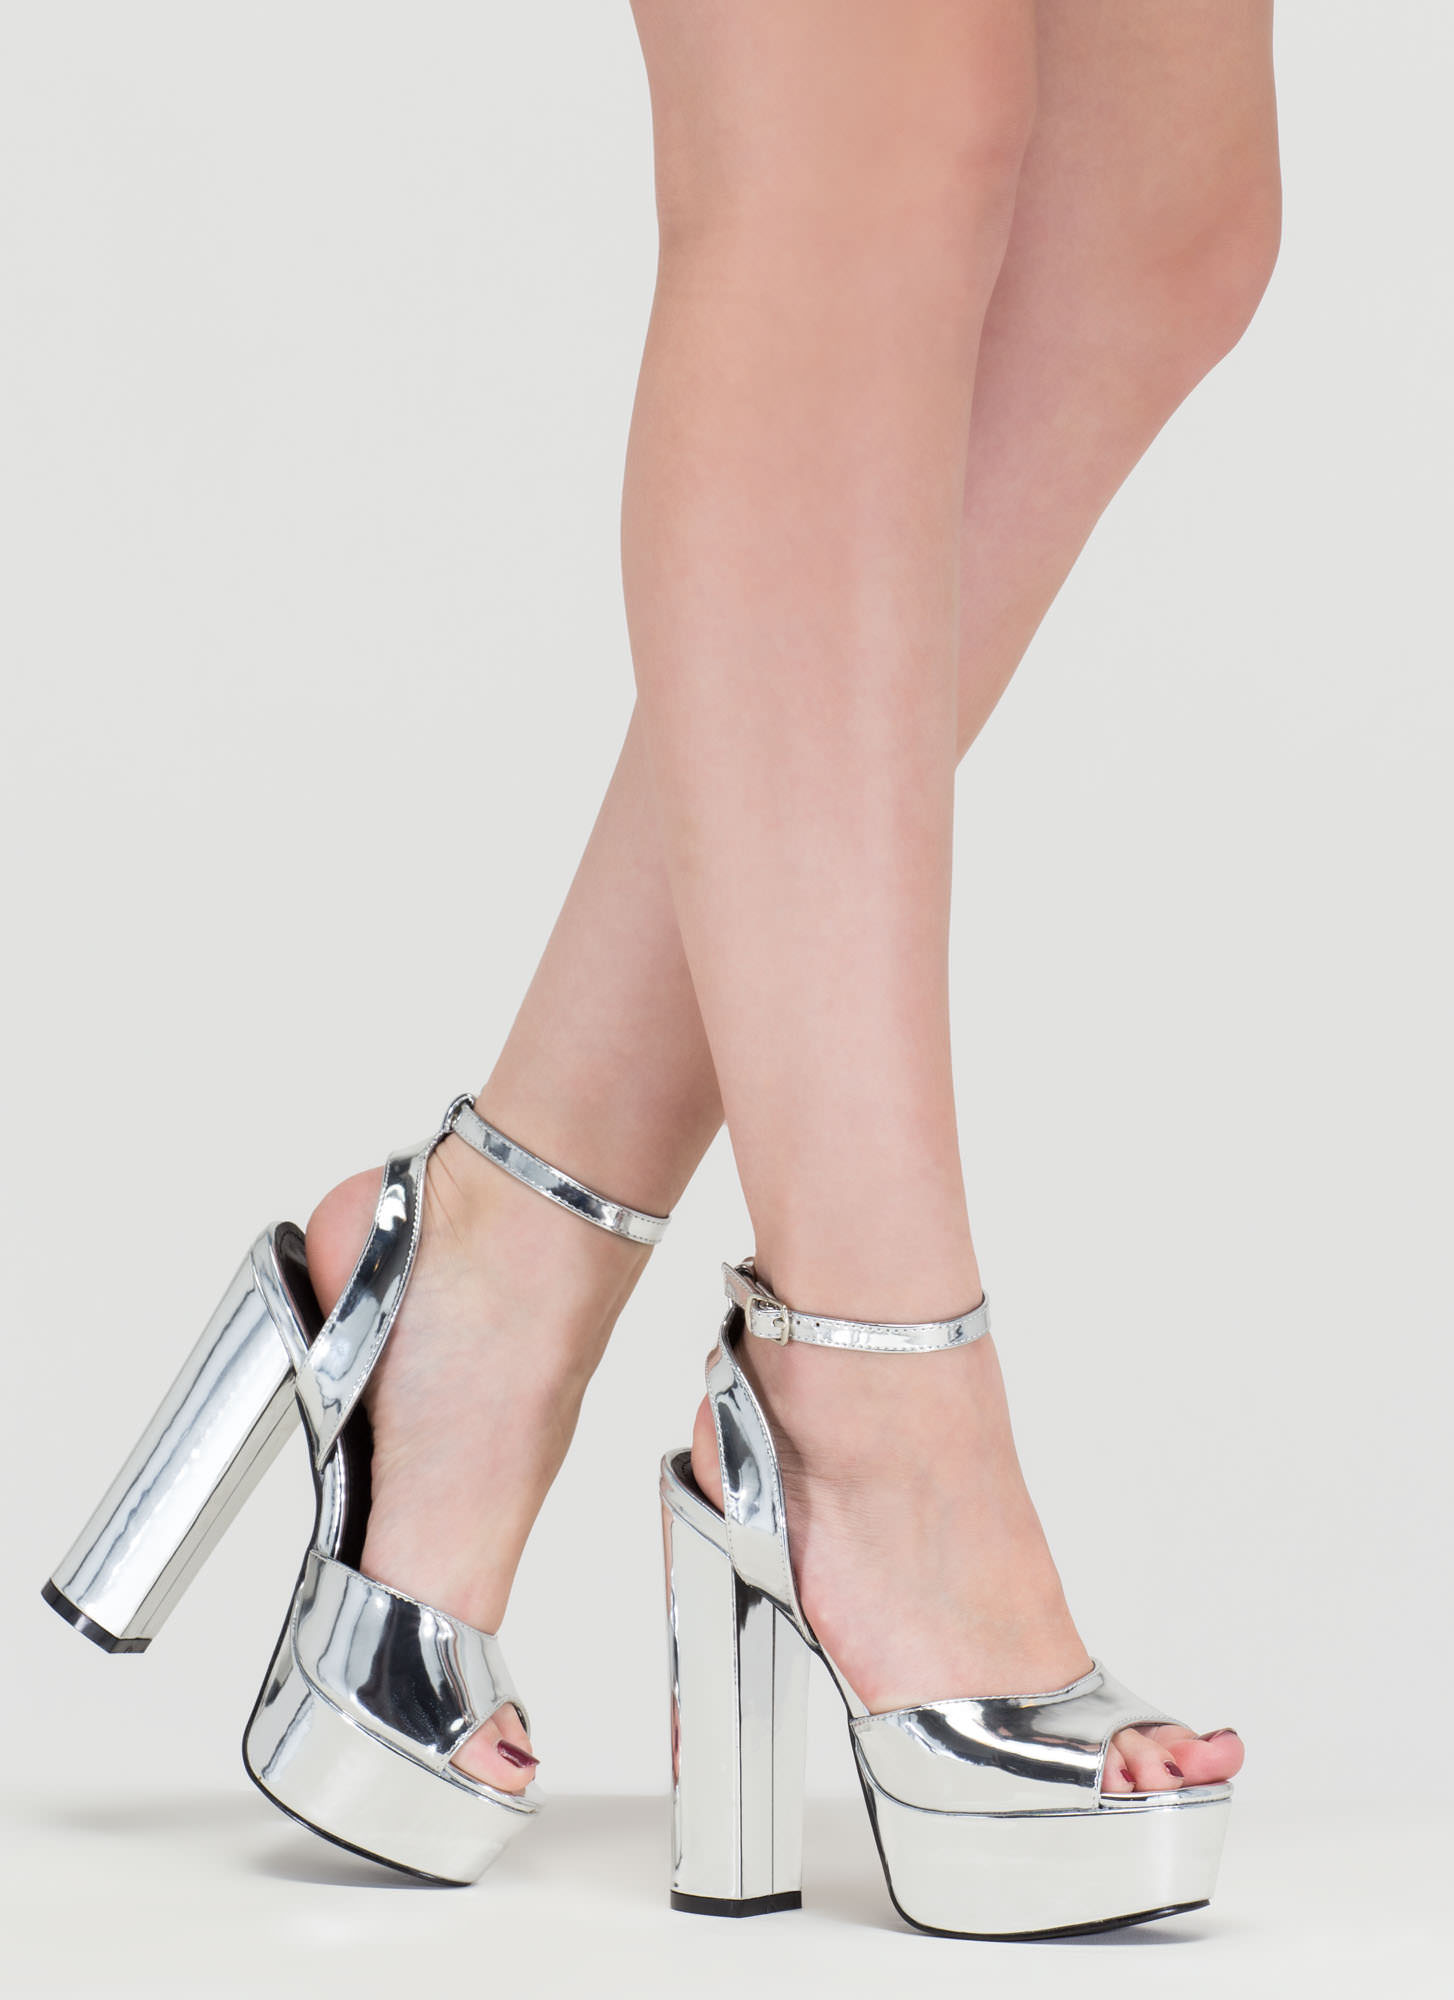 silver metallic platform heels is heel